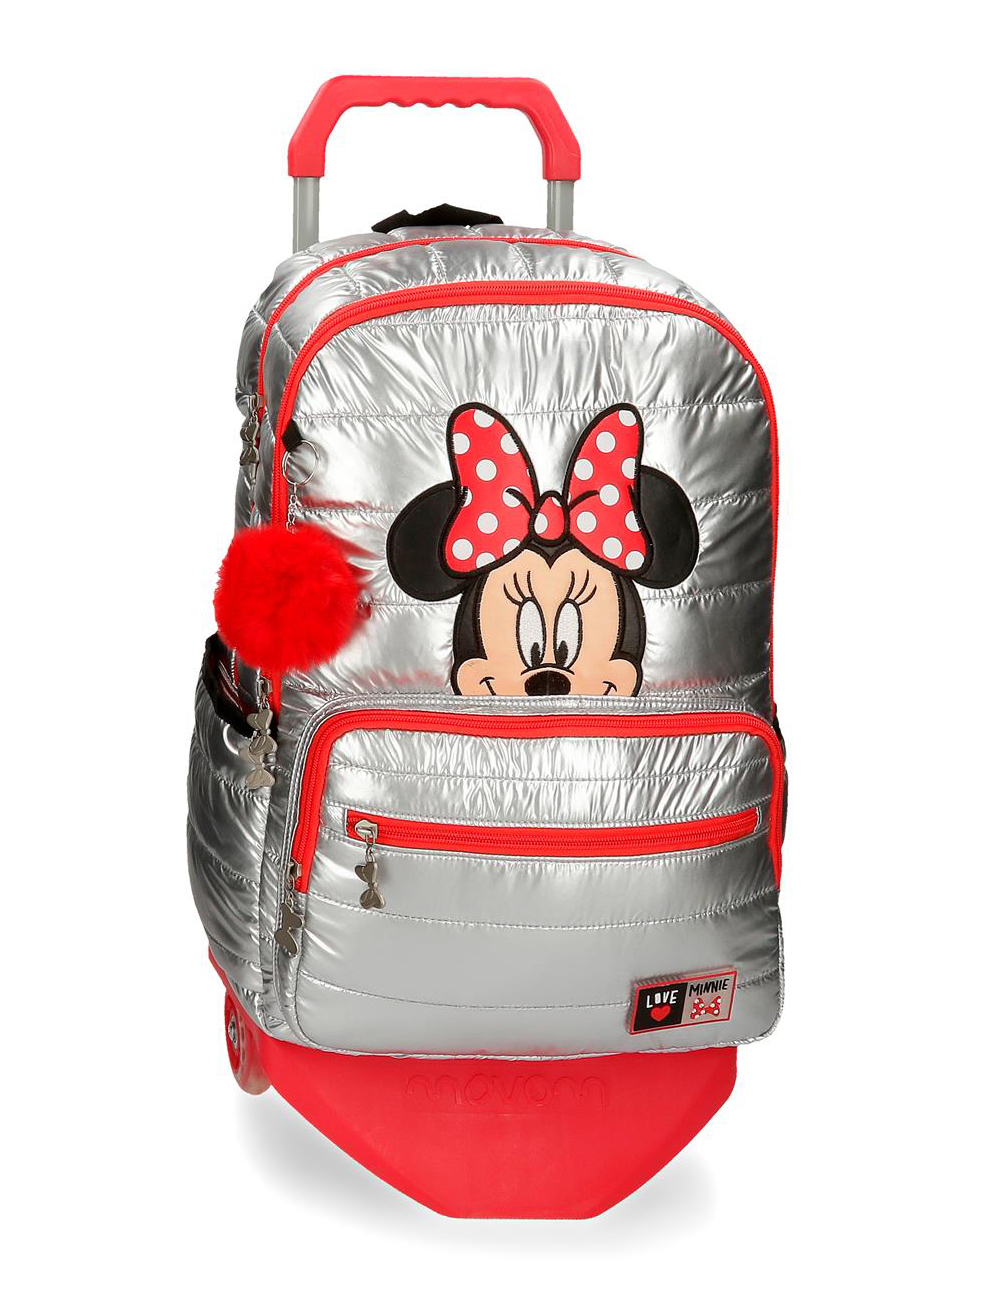 21624t1 Mochila 44cm Doble con Ruedas Minnie My Pretty Bow